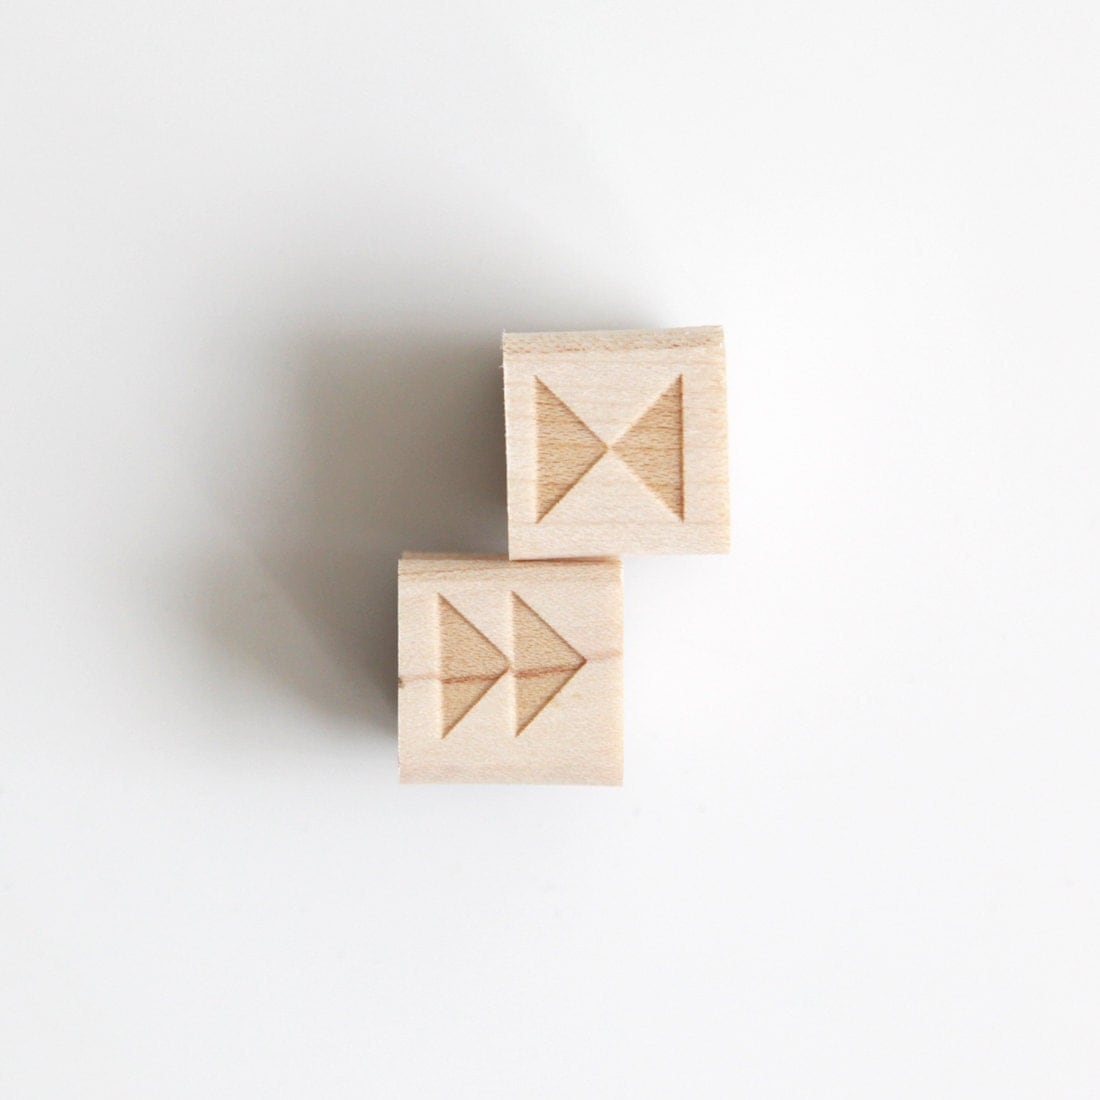 Triangle Shapes Rubber Stamp (Wood Mounted), Original Geometric Design Set of 2 - HuntersHideaway